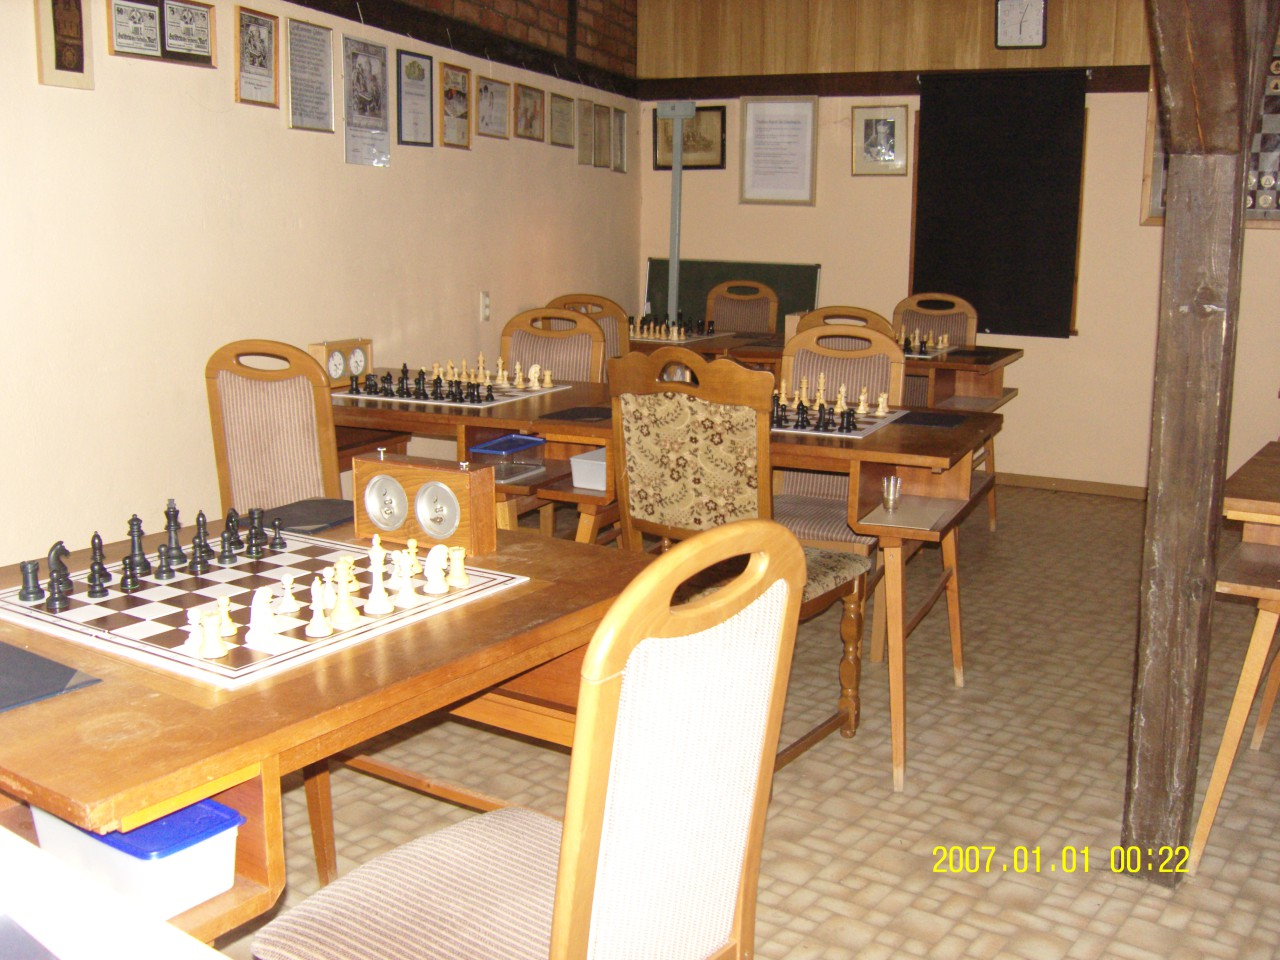 chess report ihm Gameknot chess player smokinghead (jens walter from bad bramstedt 53917720,9869263 no missiles please, germany) play chess online.